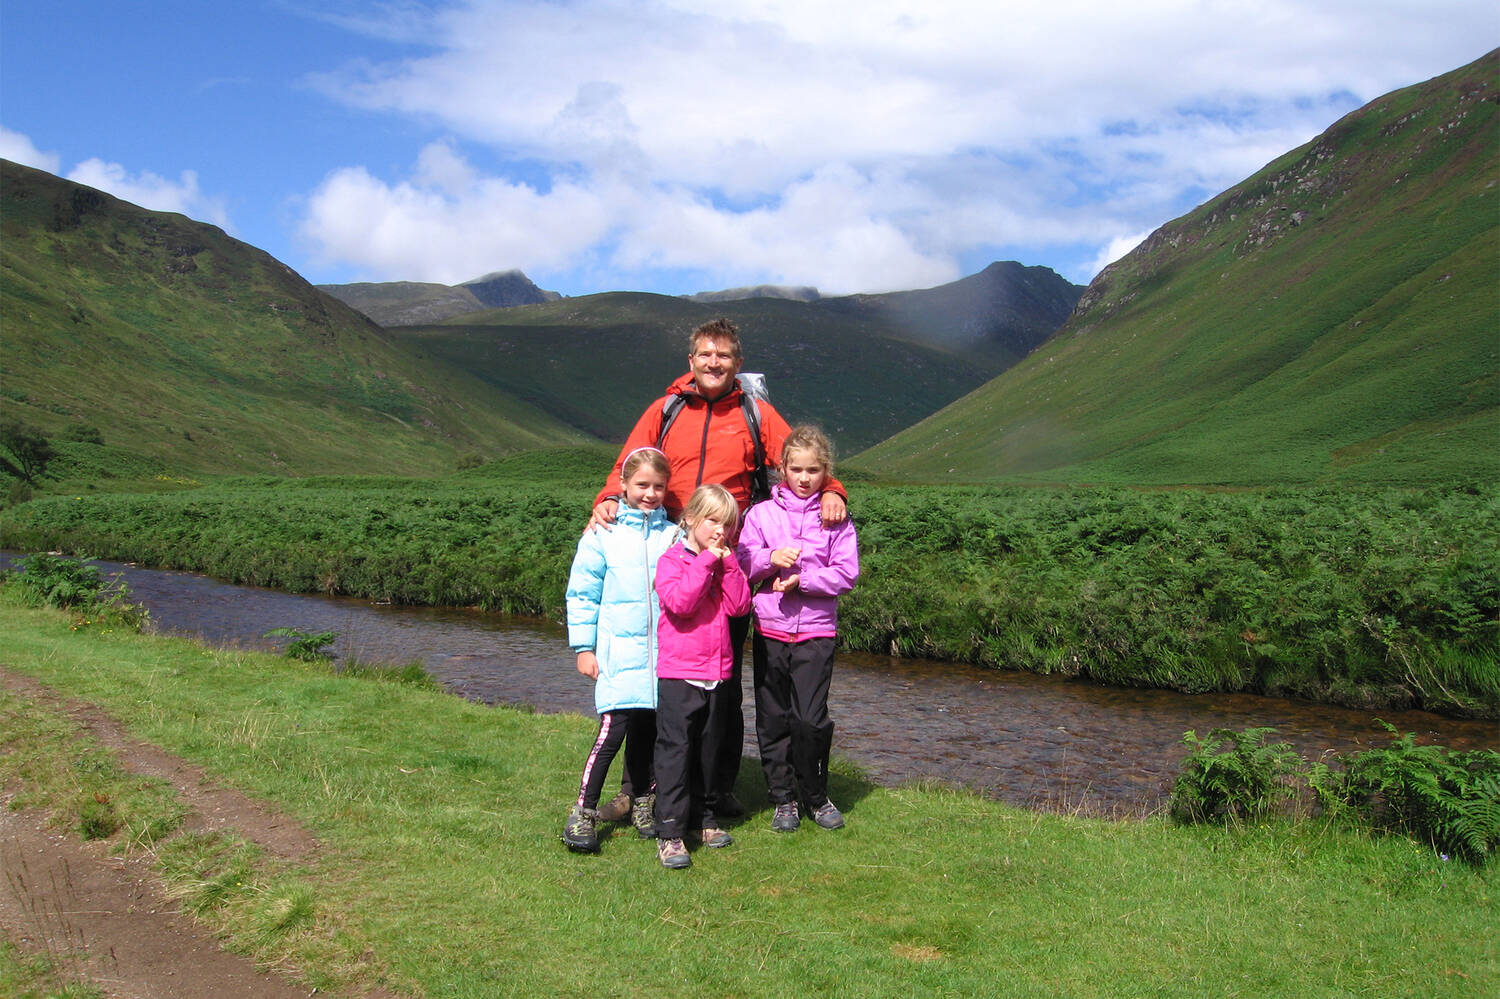 Robin McKelvie and his family in Arran